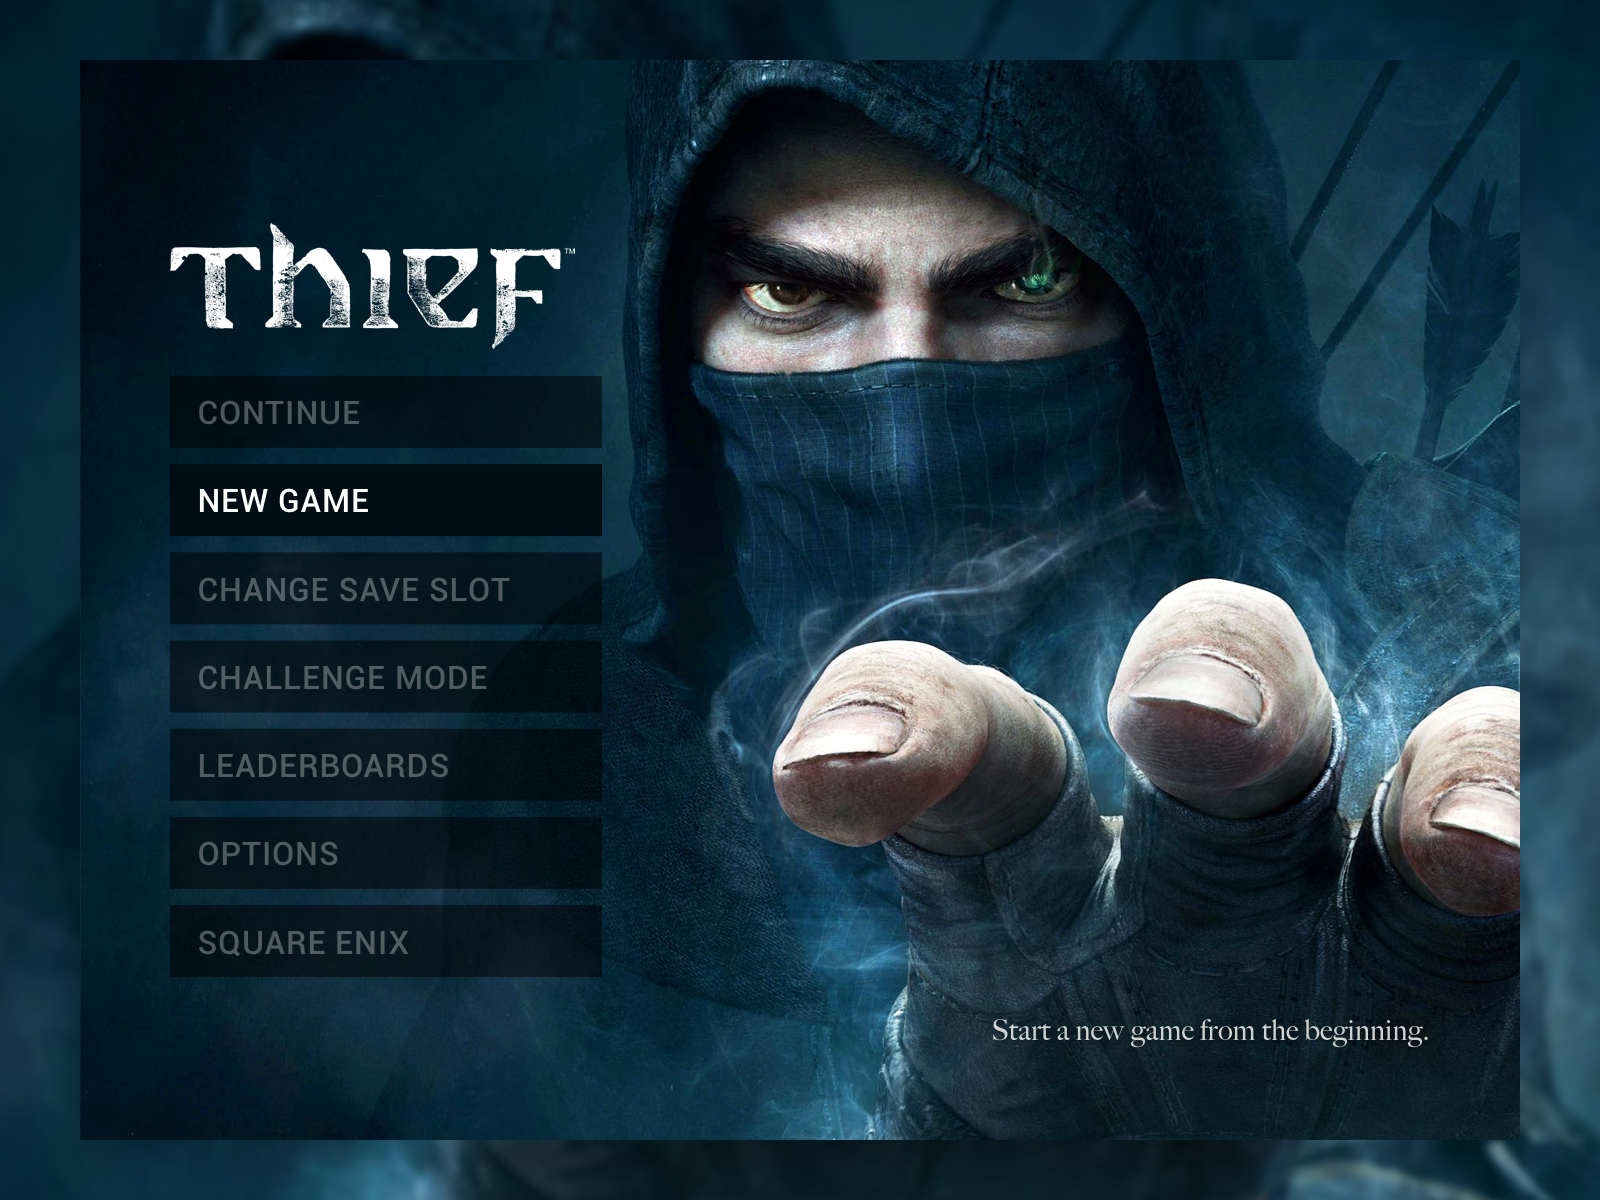 Thief Main Menu UI